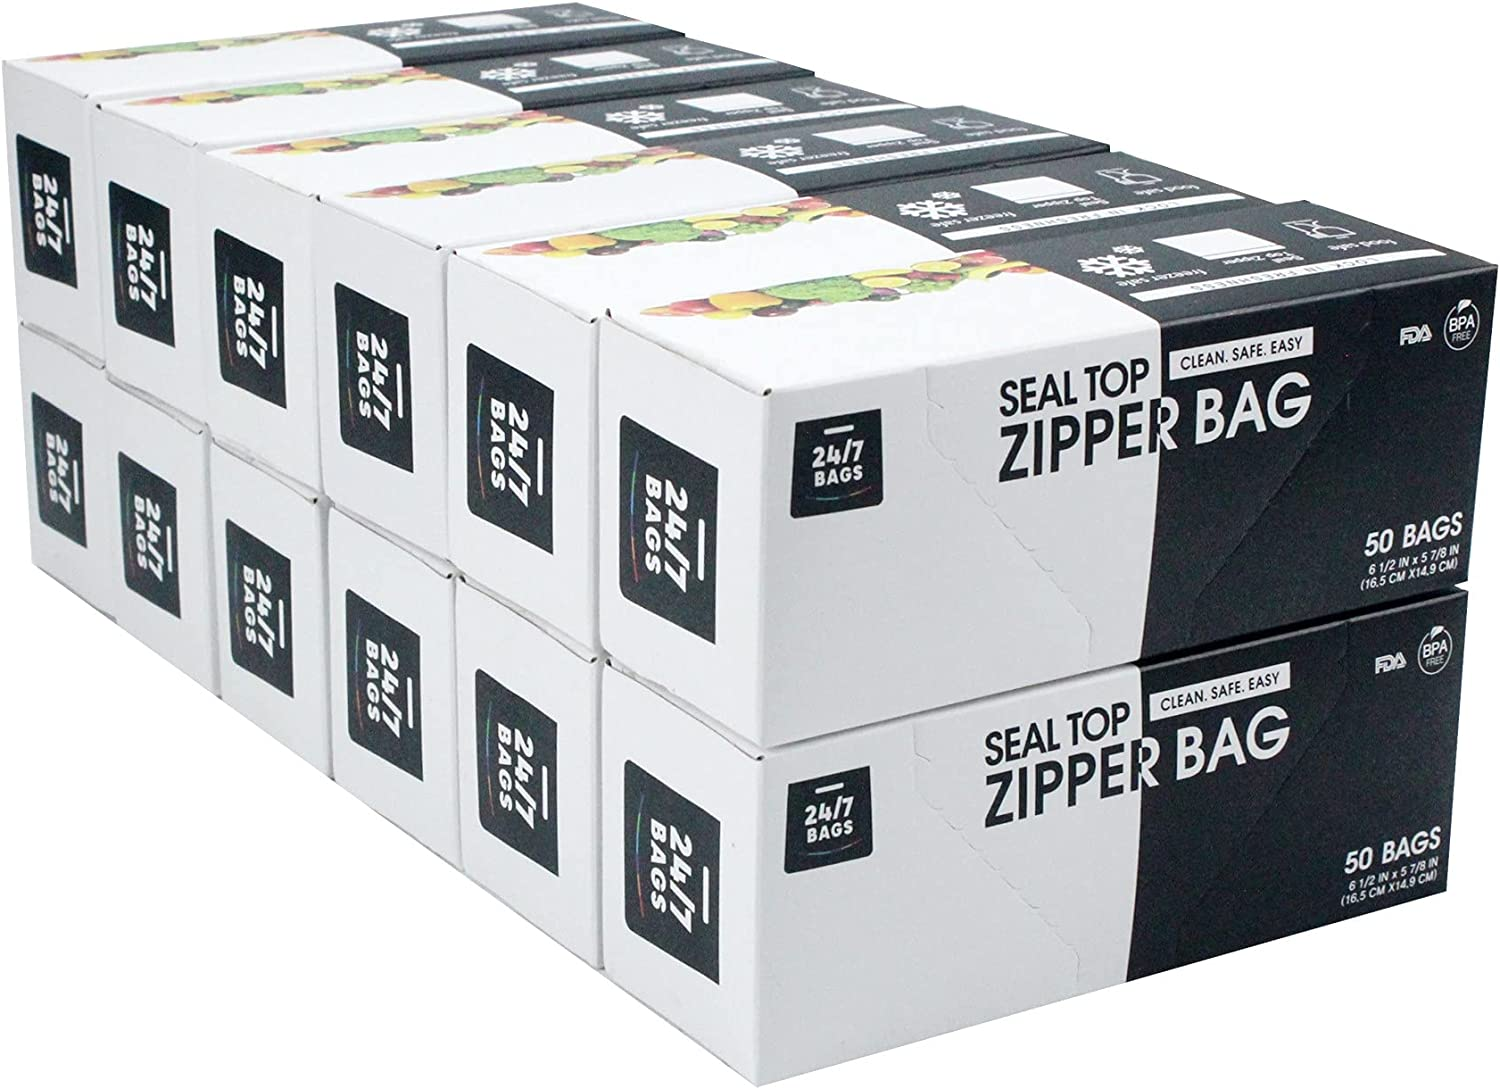 24/7 Bags - Double Zipper Storage Bags, Pint Size, 600 Count (12 Packs of 50)